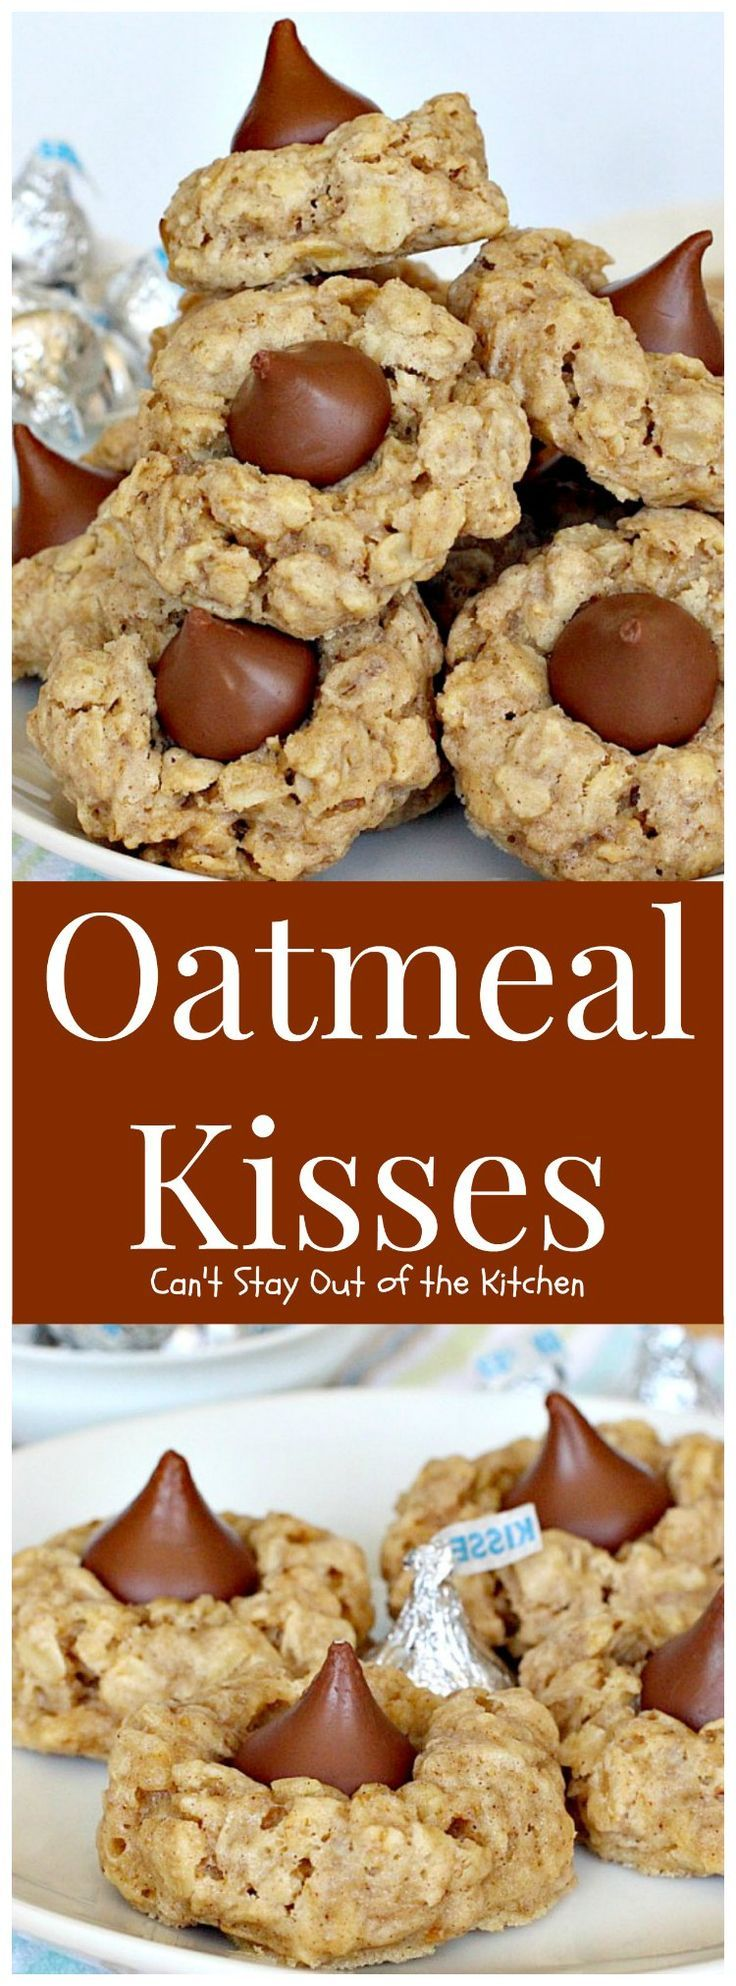 Oatmeal Kisses | Can't Stay Out of the Kitchen | These delightful #oatmeal…                                                                                                                                                                                 More